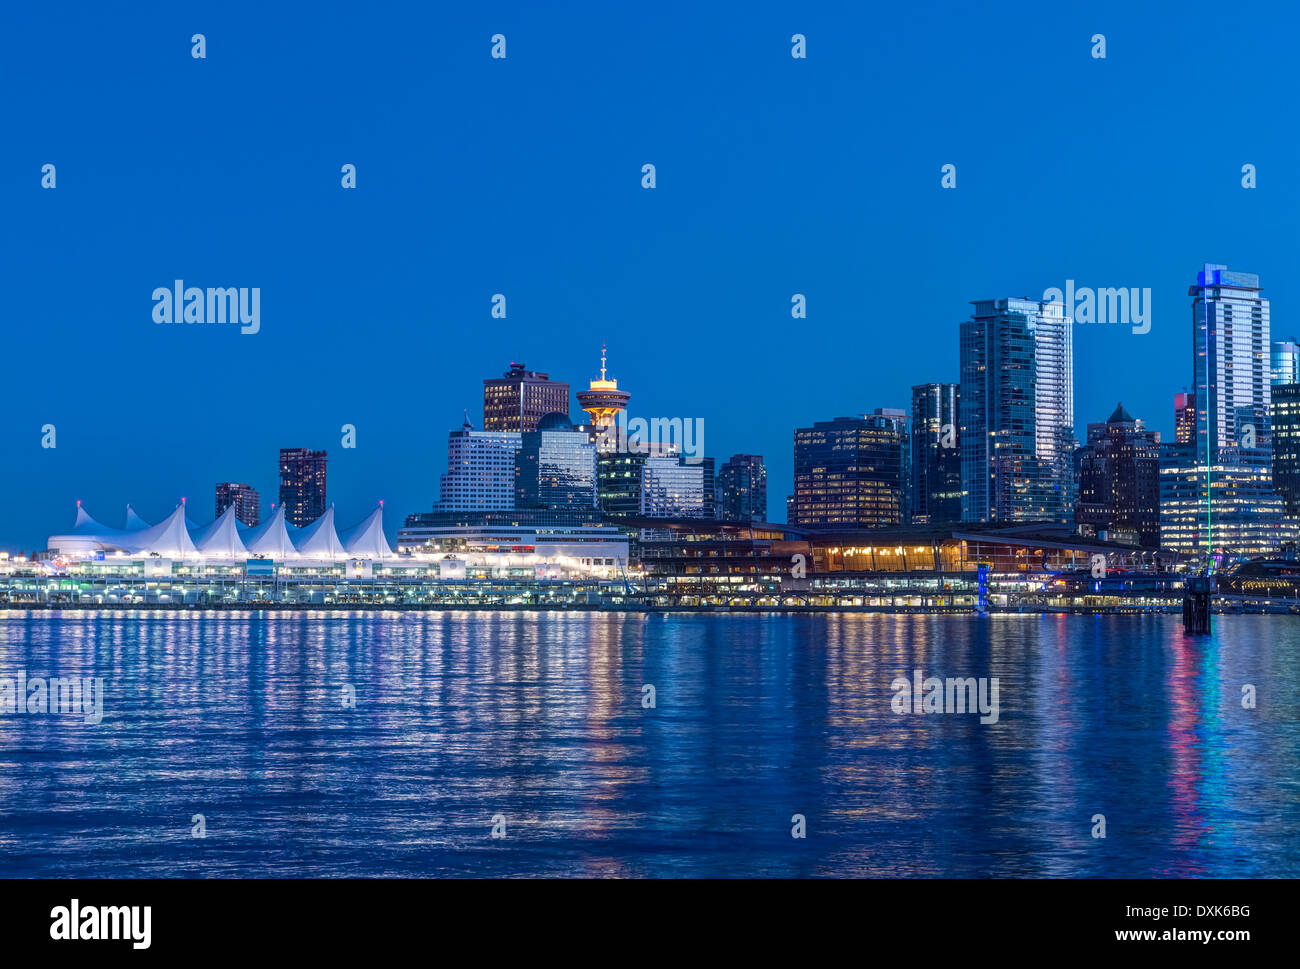 Waterfront skyline illuminated at night, Vancouver, British Columbia, Canada, - Stock Image